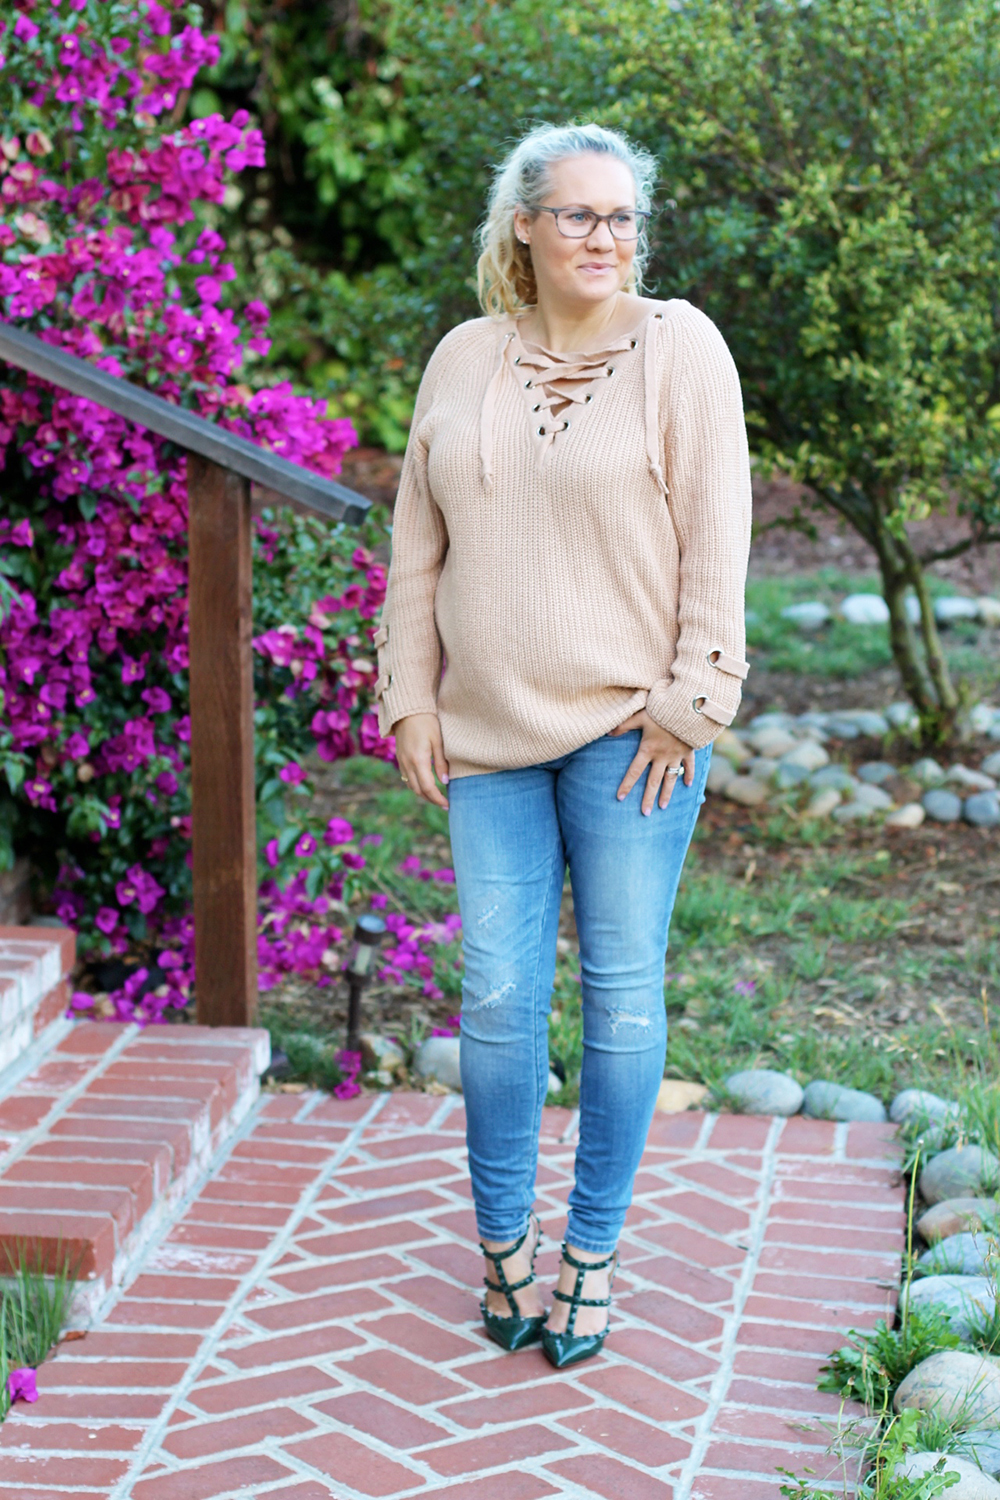 lace-up-sweater-chicwish-outfit-inspiration-mom-style-fashion-blogger-have-need-want-5